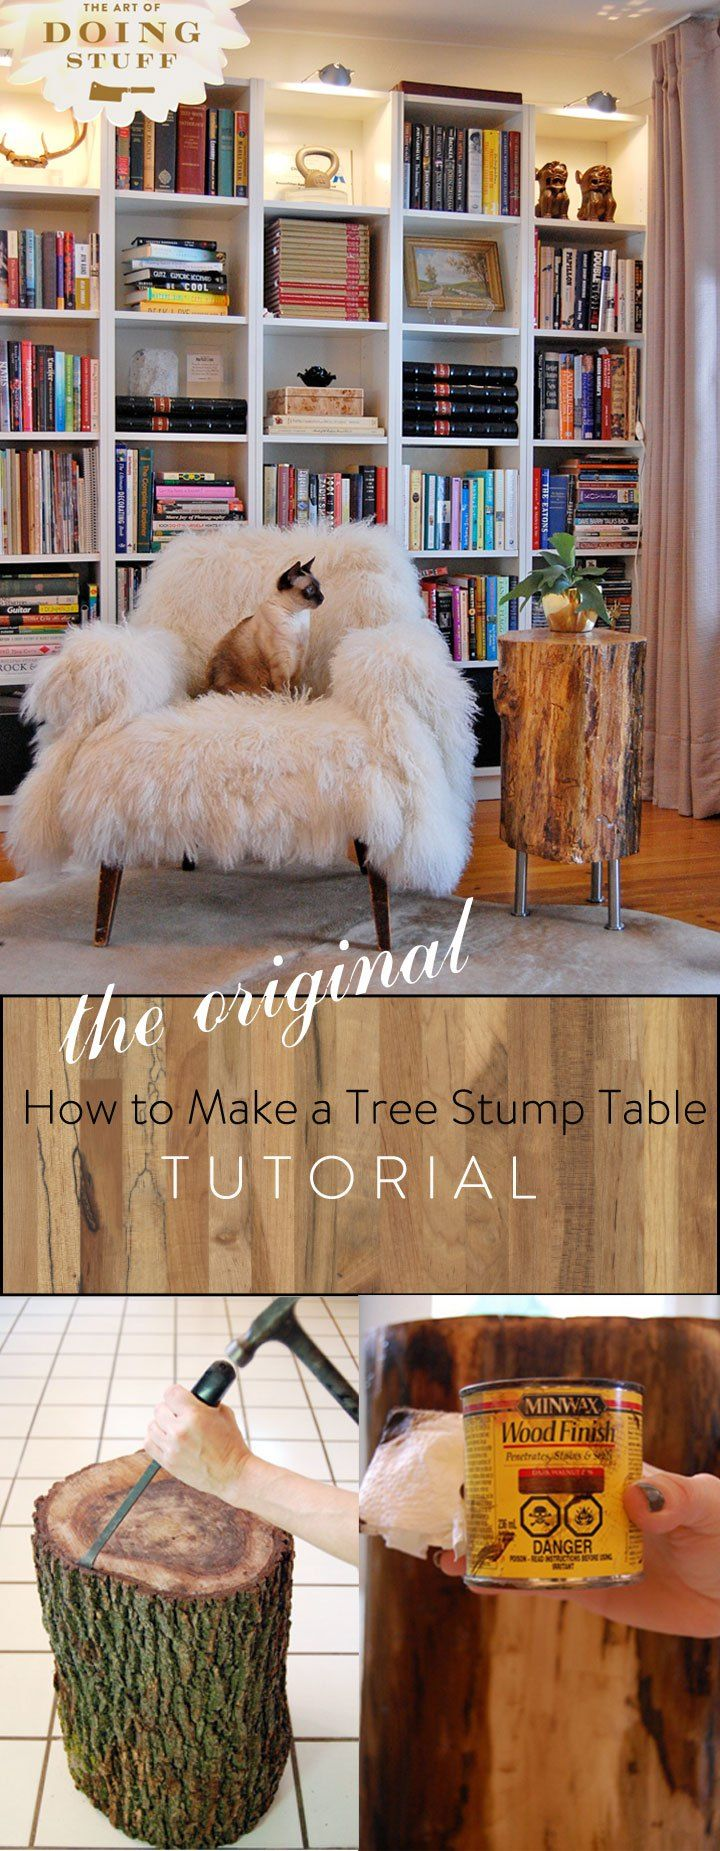 The original tree stump tutorial! Why you need to remove the bark, why to finish it or not finish it, and why you need to let your stump dry out. Plus of course, how to make it.